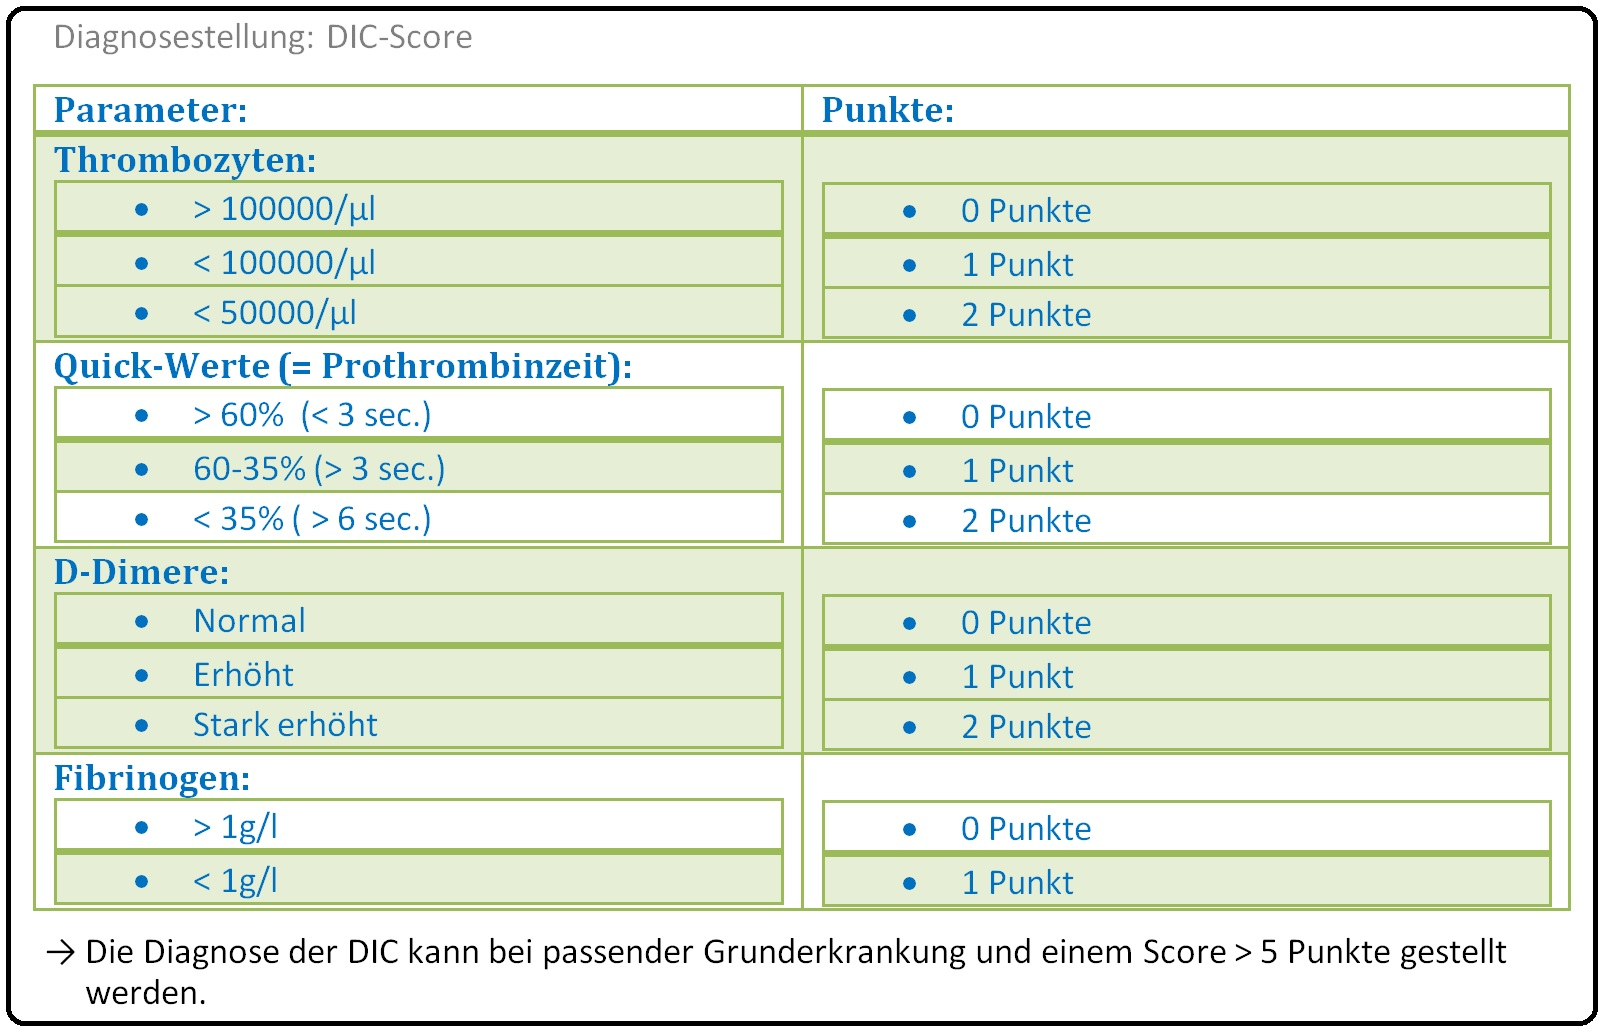 031 Diagnosestellung DIC Score